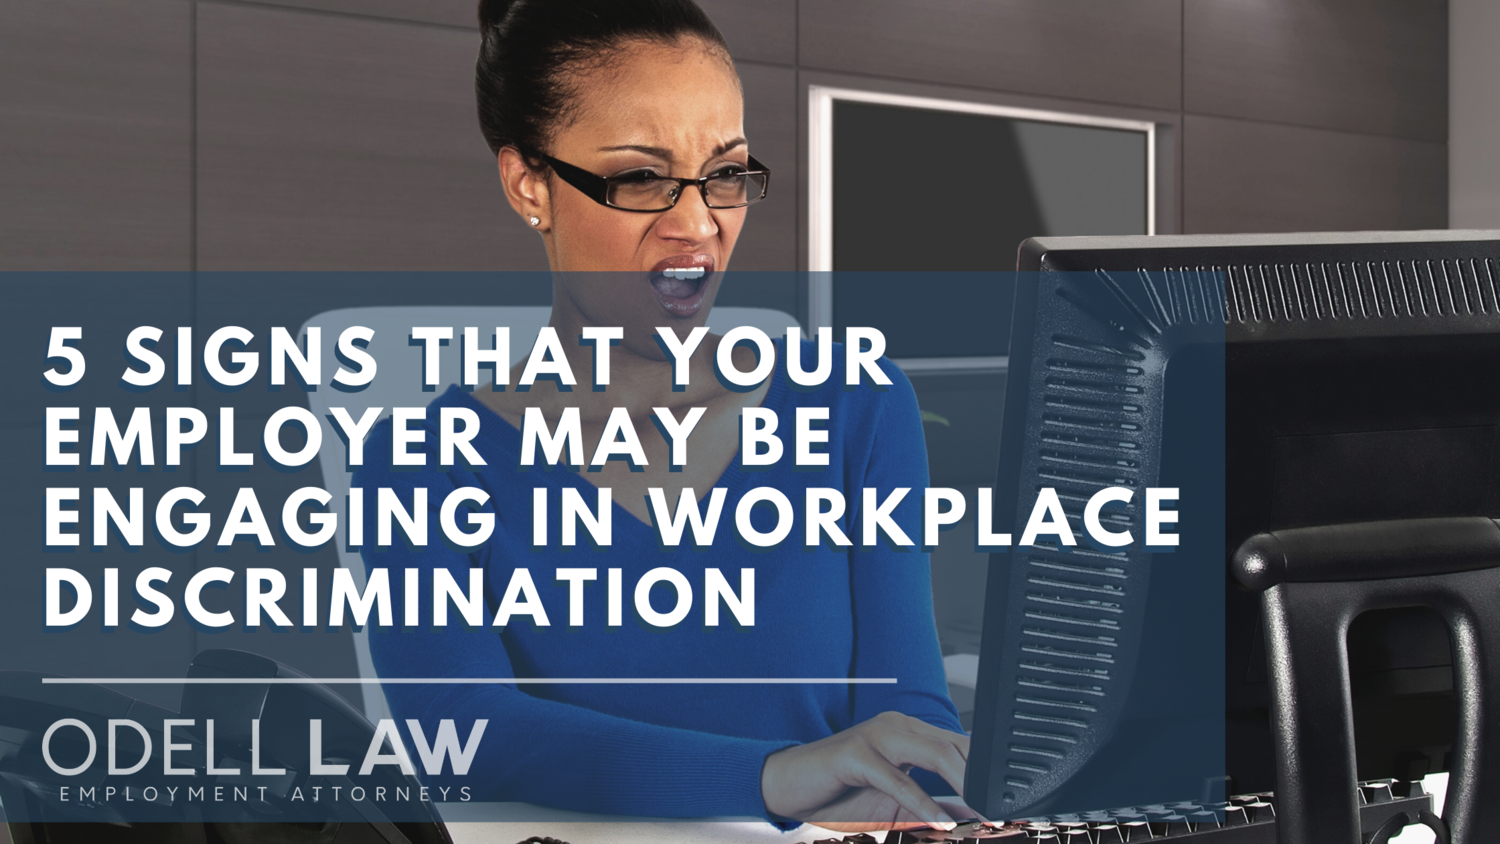 may be engaging in workplace discrimination